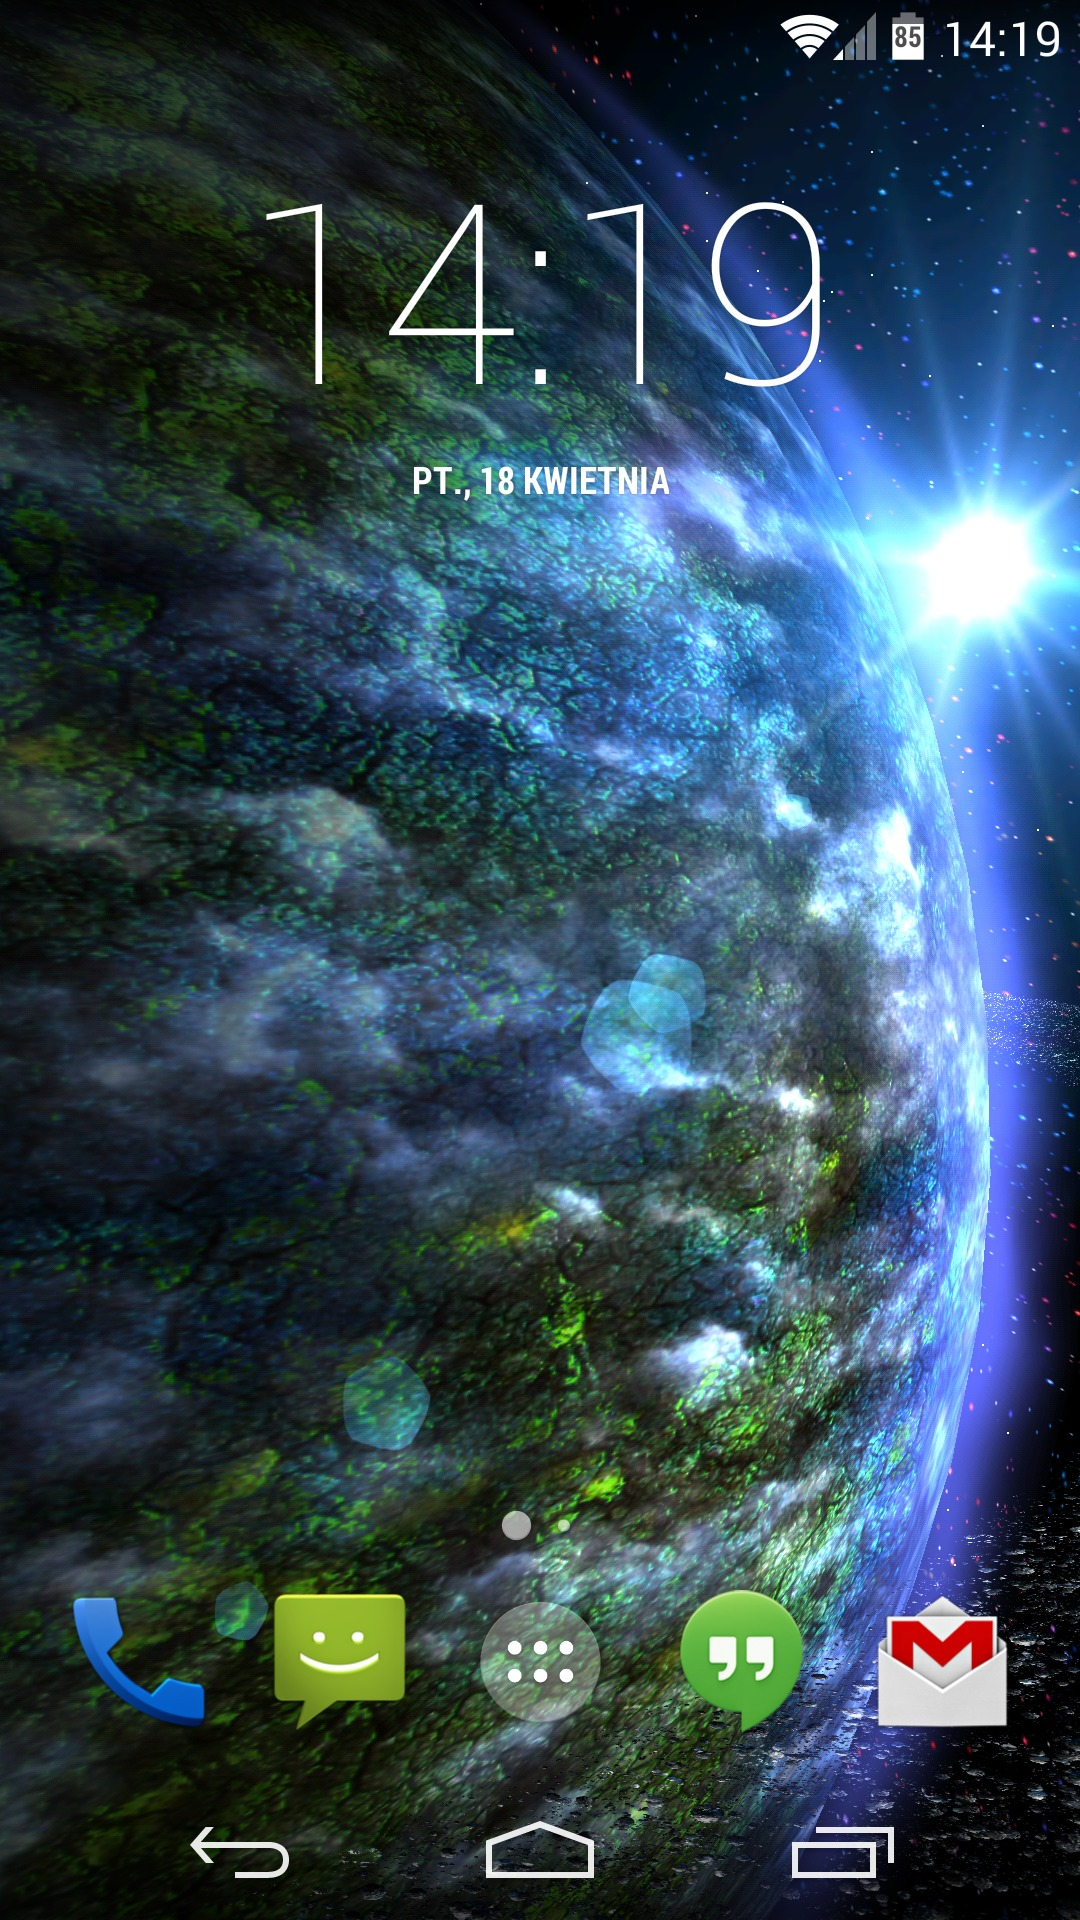 Screenshot_2014-04-18-14-25-59-1 Recenzja Planets Pack (5.29 zł) – Android